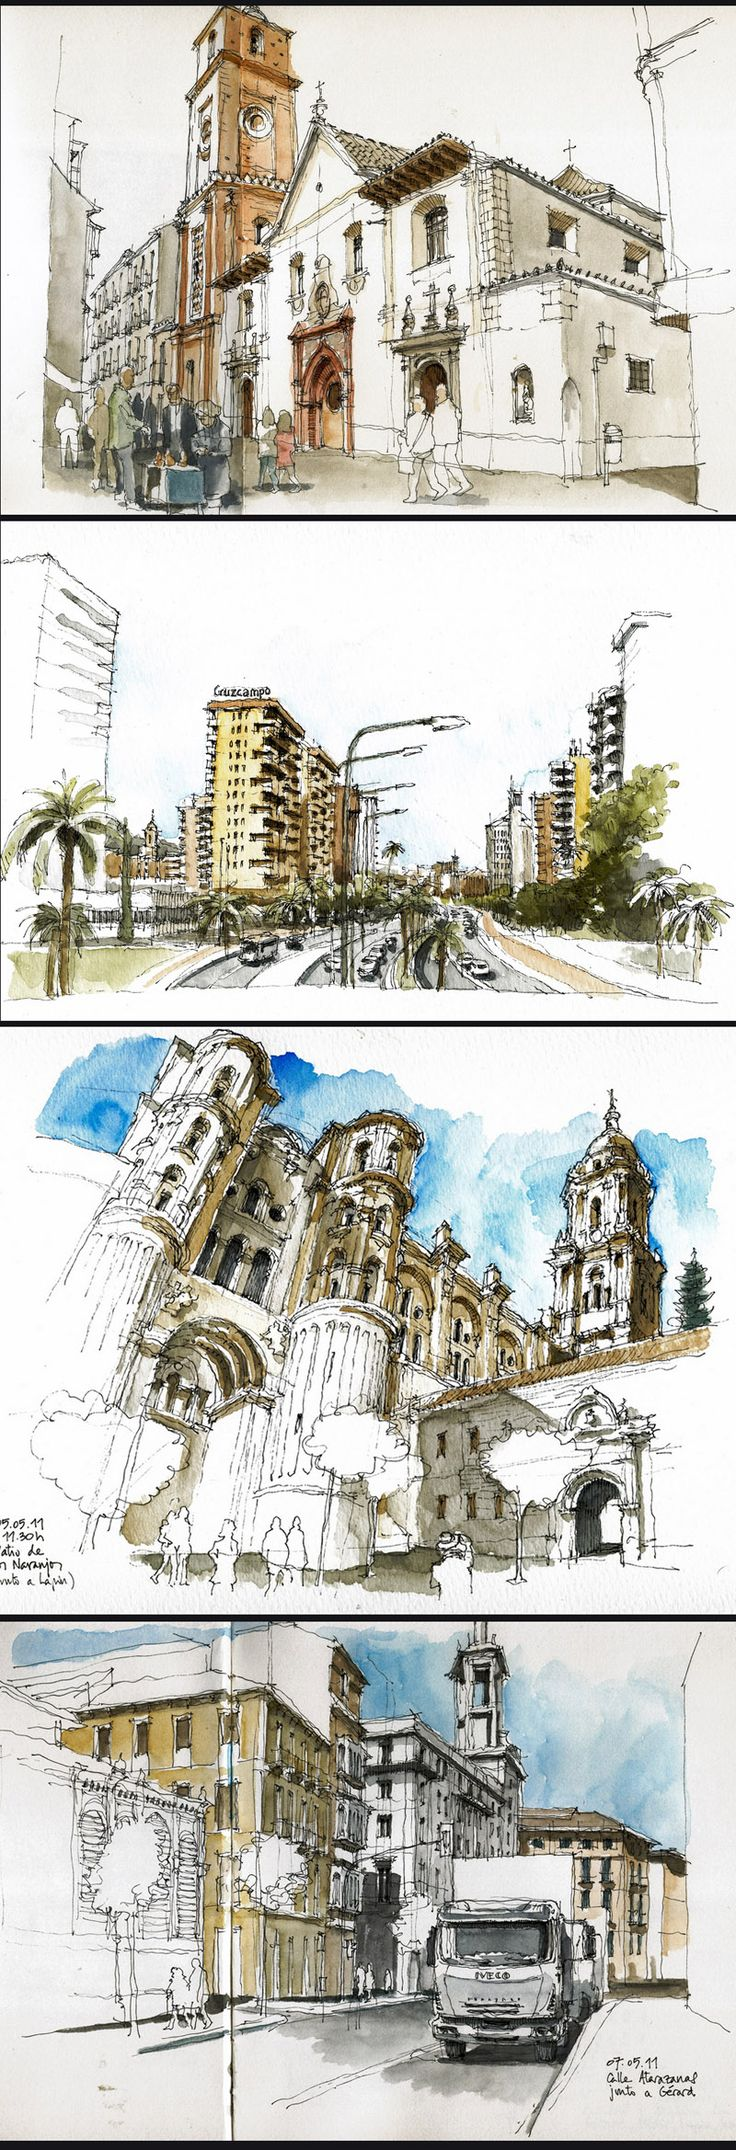 Luis Ruiz Padrón  #travel  #journal  #watercolor                                                                                                                                                                                 More